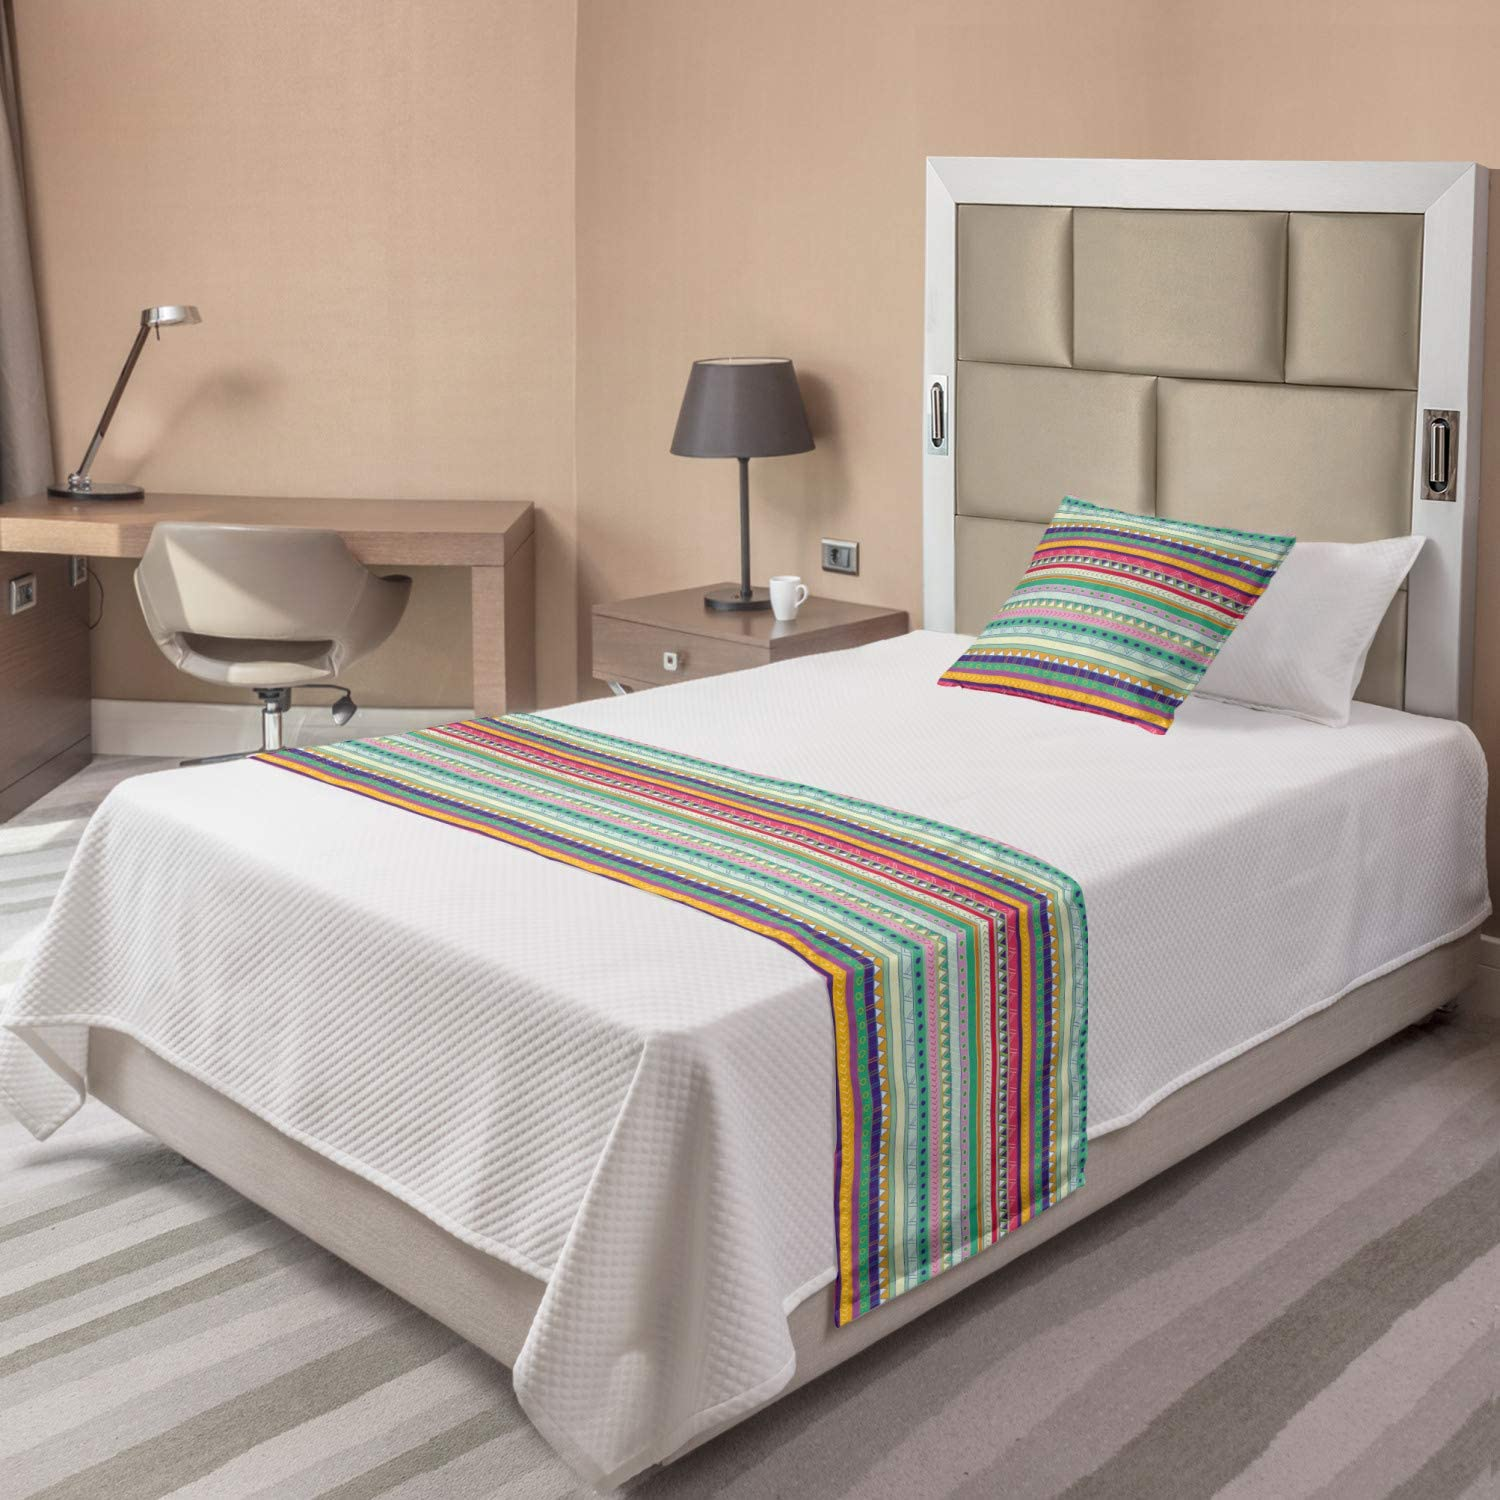 Lunarable Ethnic Bed Runner Set, Doodle Style Colorful Stripes with Circles Triangles and Arrow Timeless Art, Decorative Bedding Scarf and a Pillow Sham for Hotels Homes, Twin, Teal Magenta